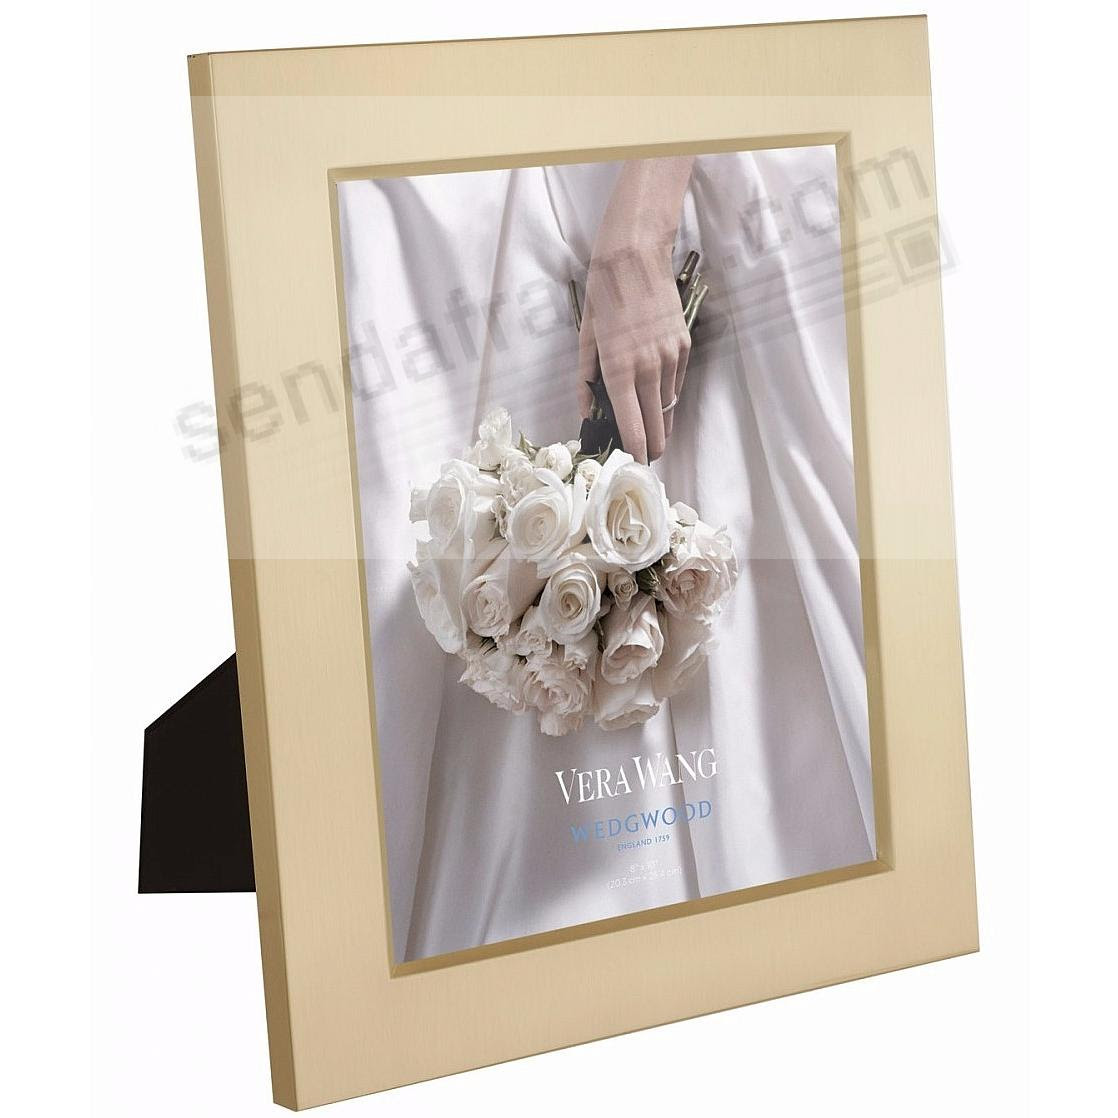 Satin Gold 8x10 Frame By Vera Wang For Wedgwood Picture Frames